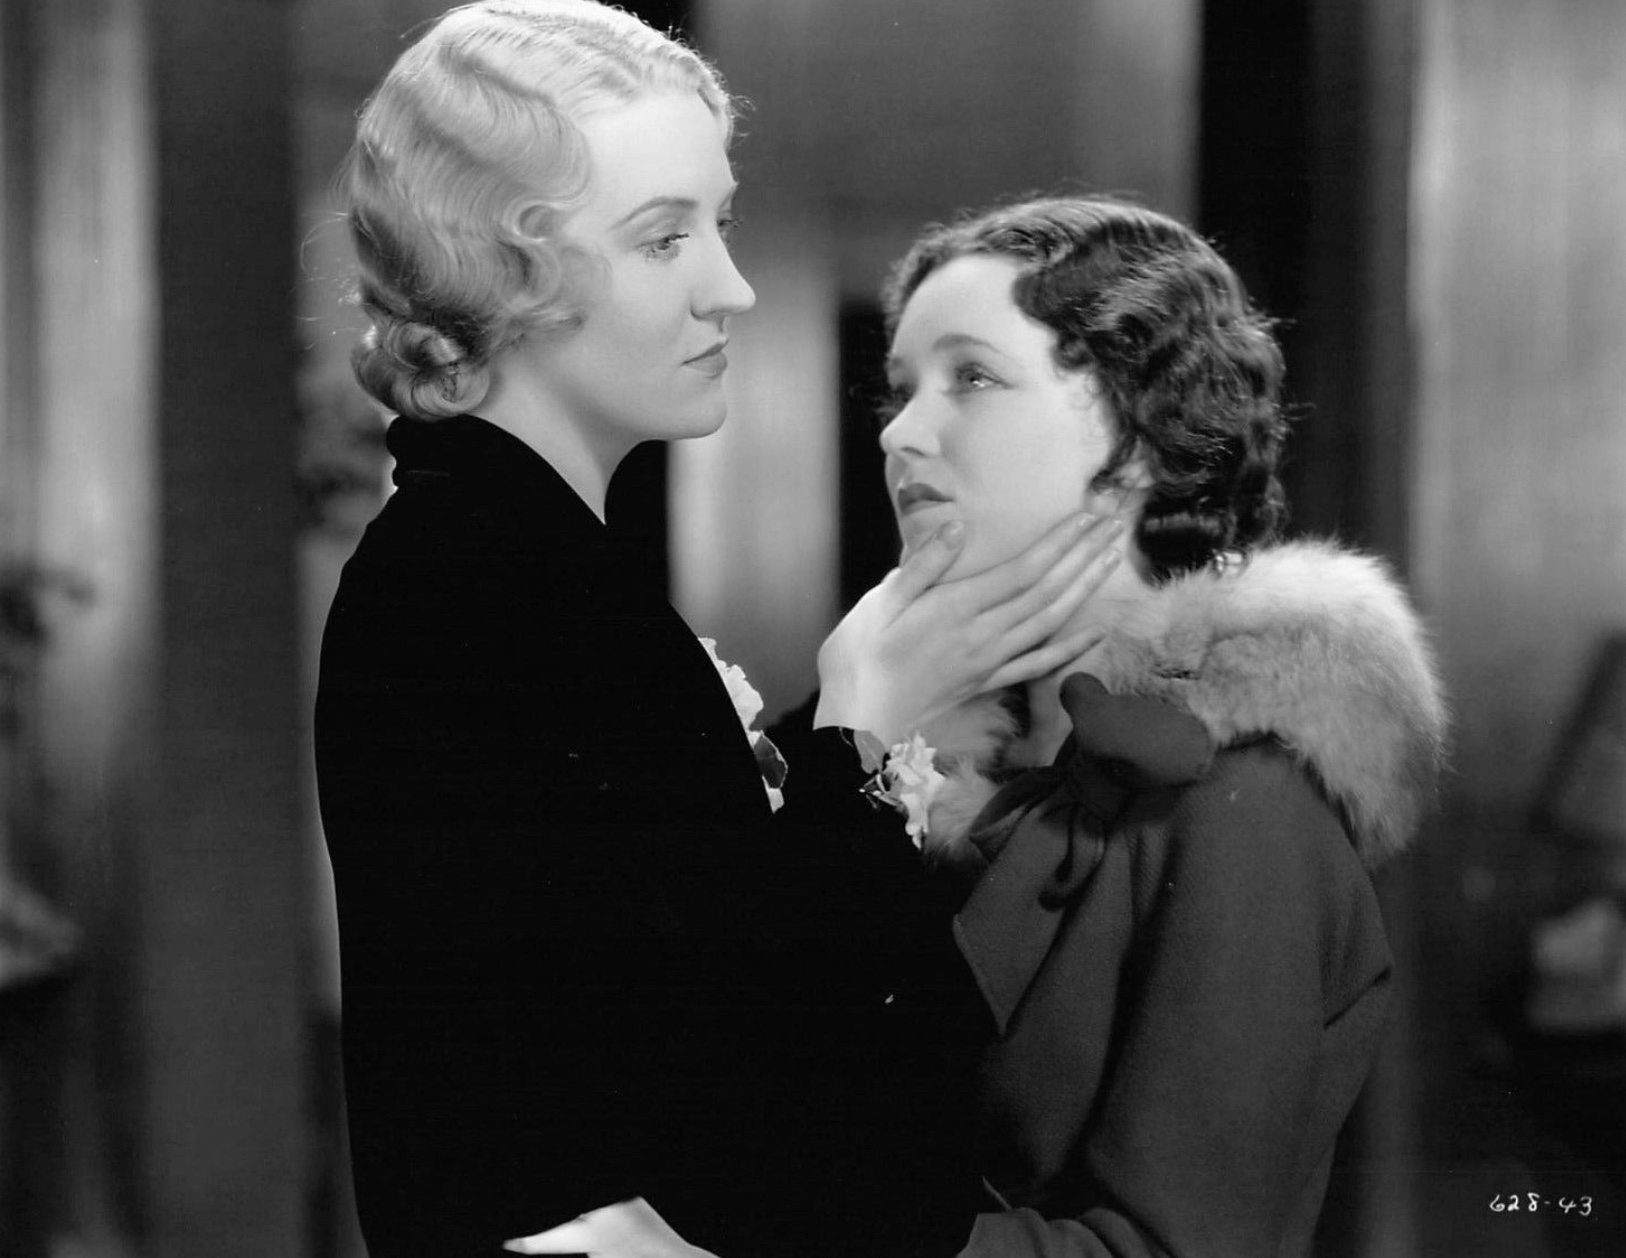 Maureen O'Sullivan and Verree Teasdale in Skyscraper Souls (1932)